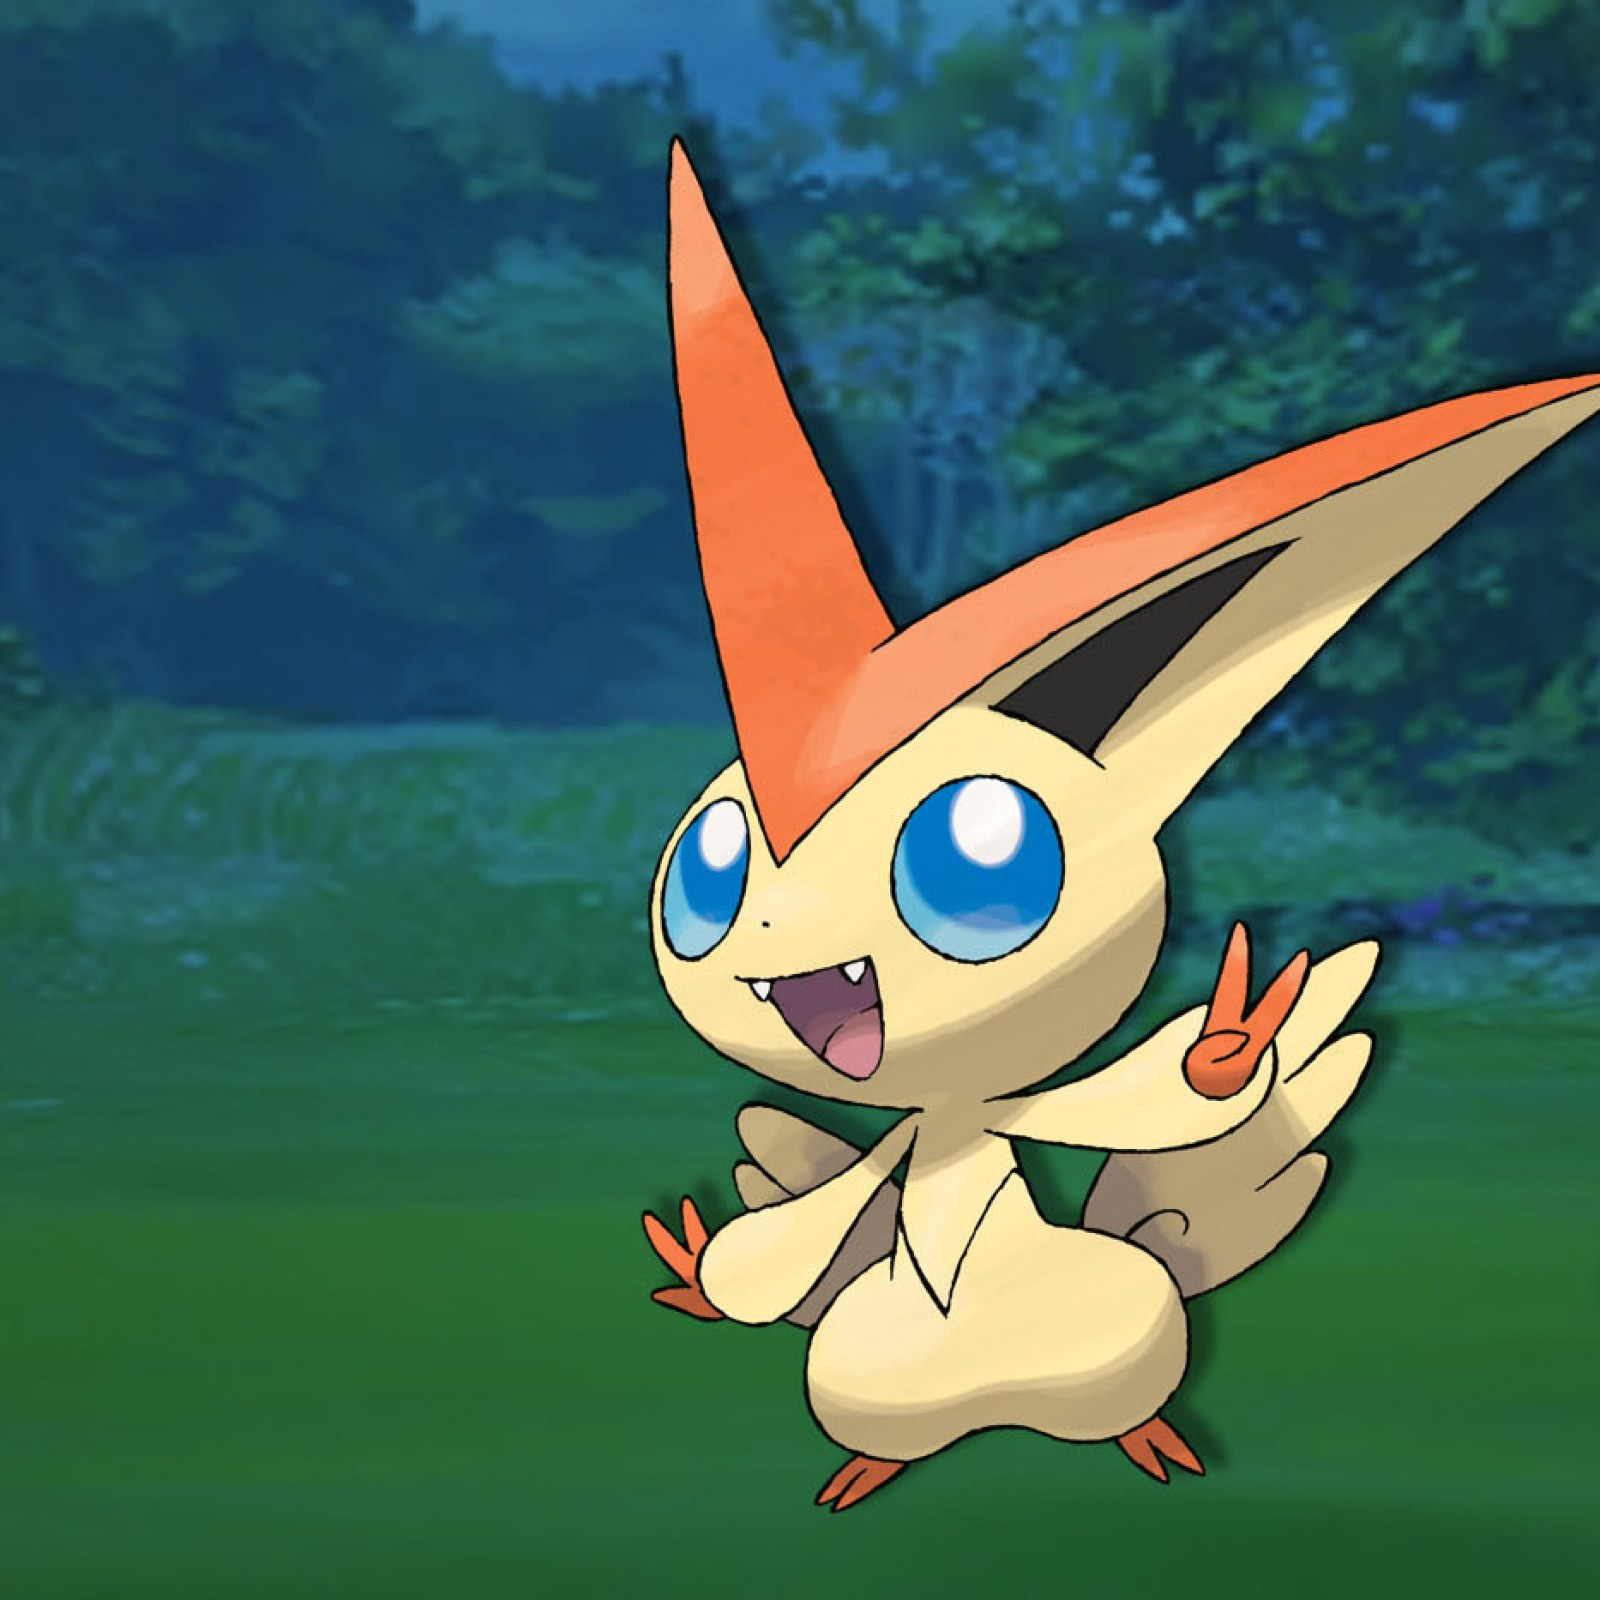 Pokémon Go Victini Special Research Tasks Are Live And Give Trainers Shot At Catching Mythical